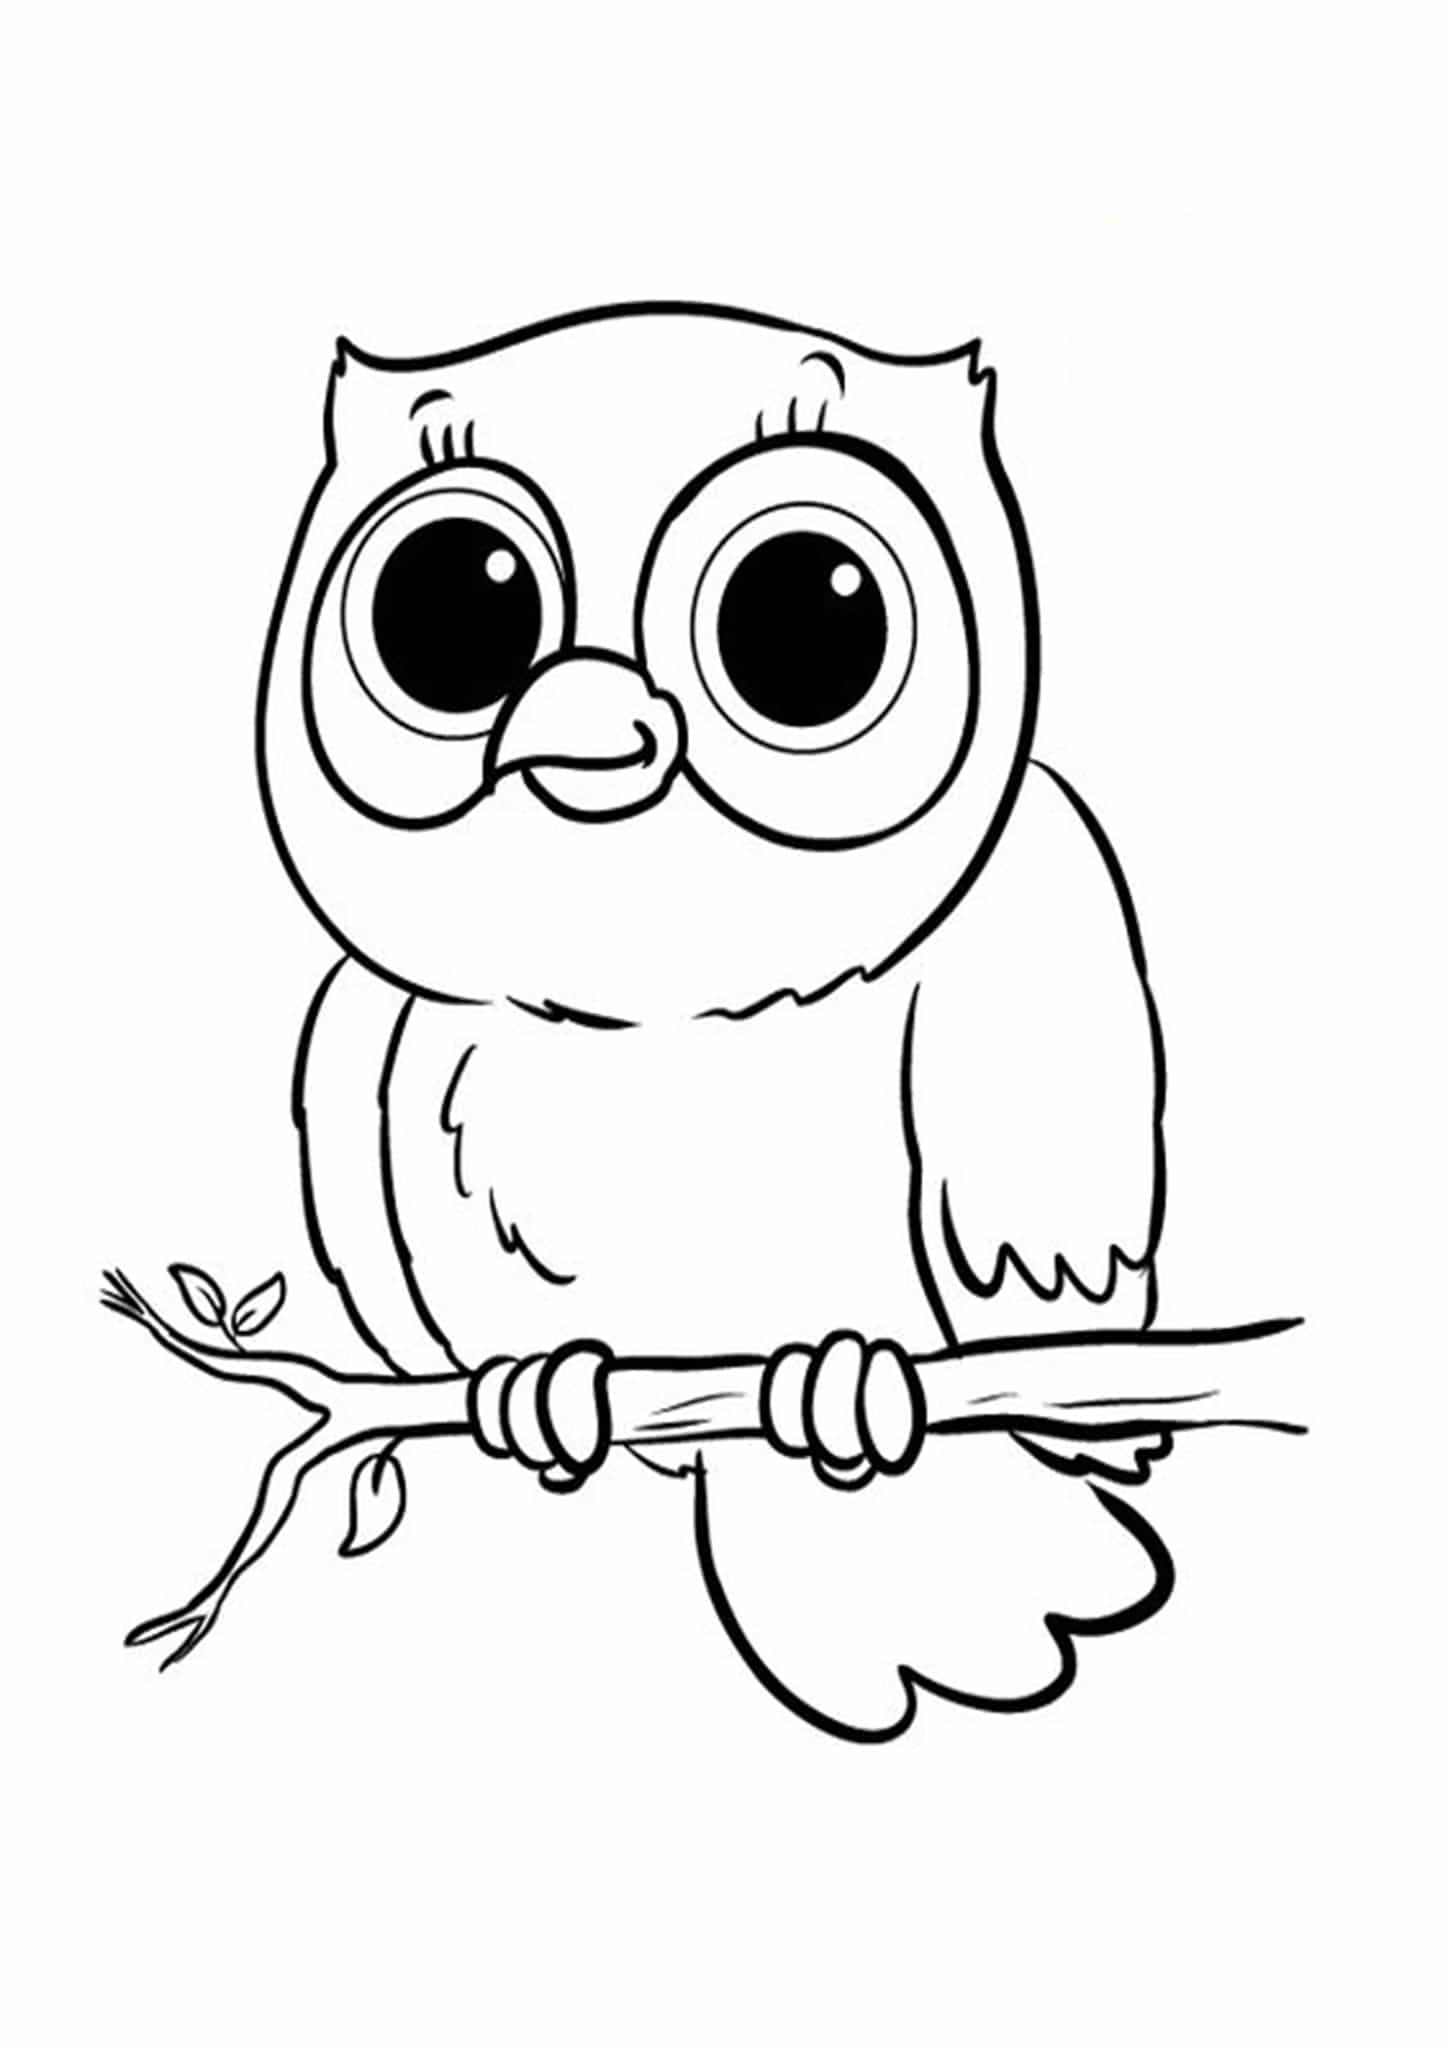 owl coloring images free easy to print owl coloring pages tulamama owl coloring images